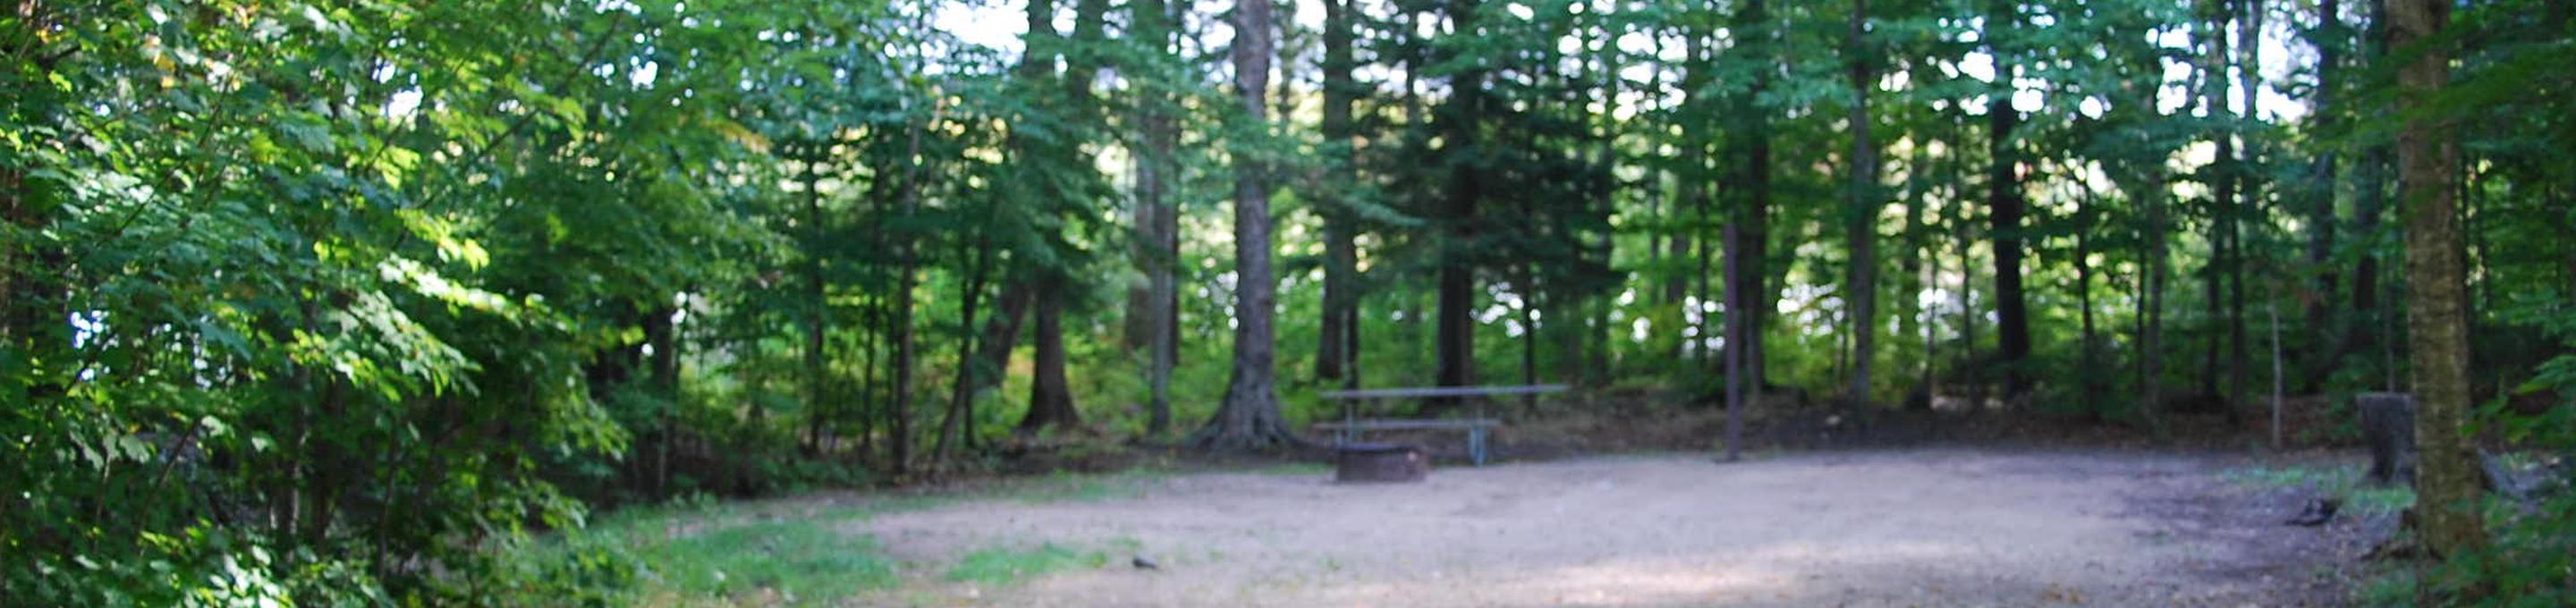 AuTrain Lake Campground site #26 full site view with fire pit and picnic table.